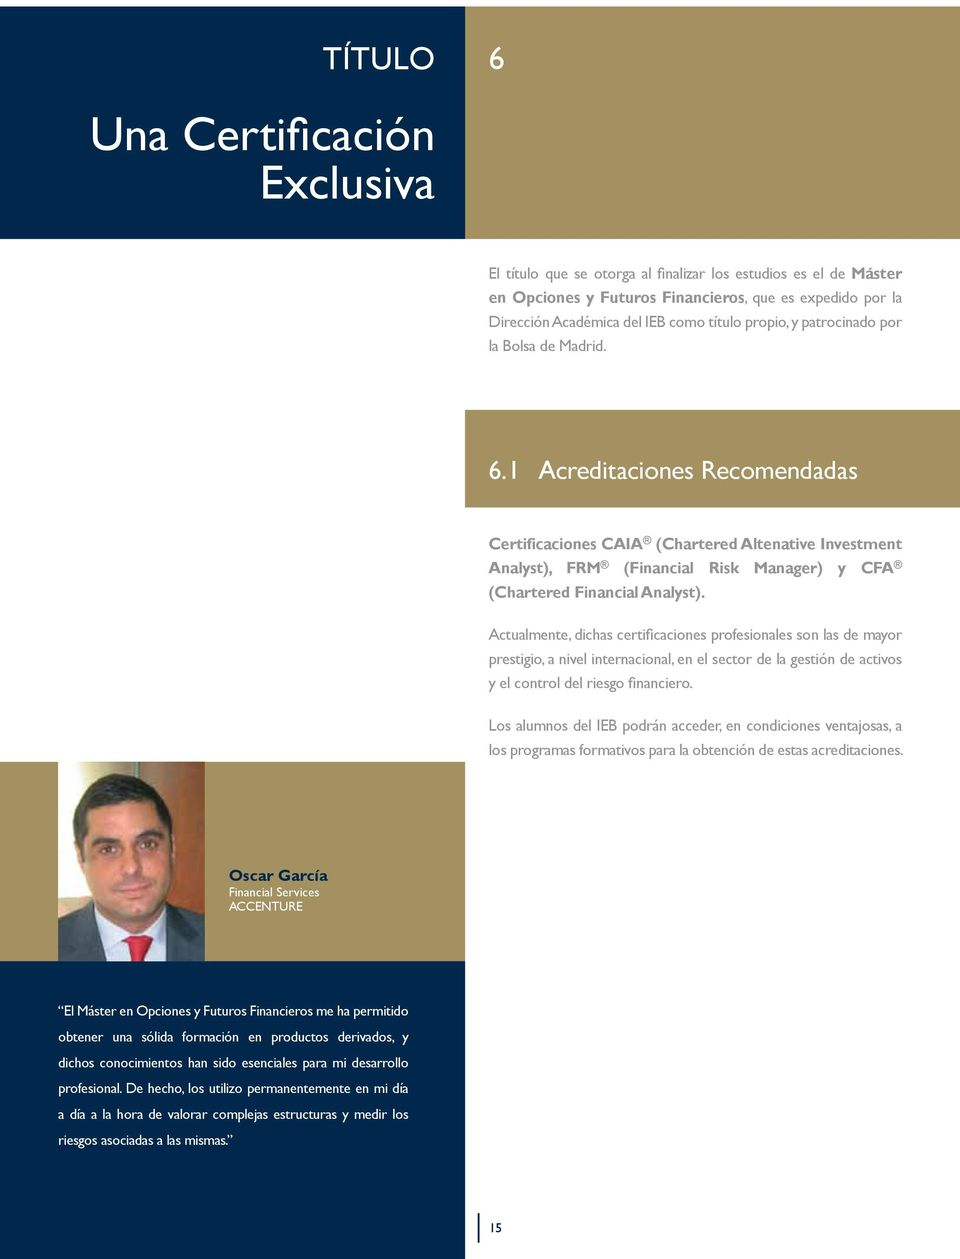 1 Acreditaciones Recomendadas Certificaciones CAIA (Chartered Altenative Investment Analyst), FRM (Financial Risk Manager) y CFA (Chartered Financial Analyst).